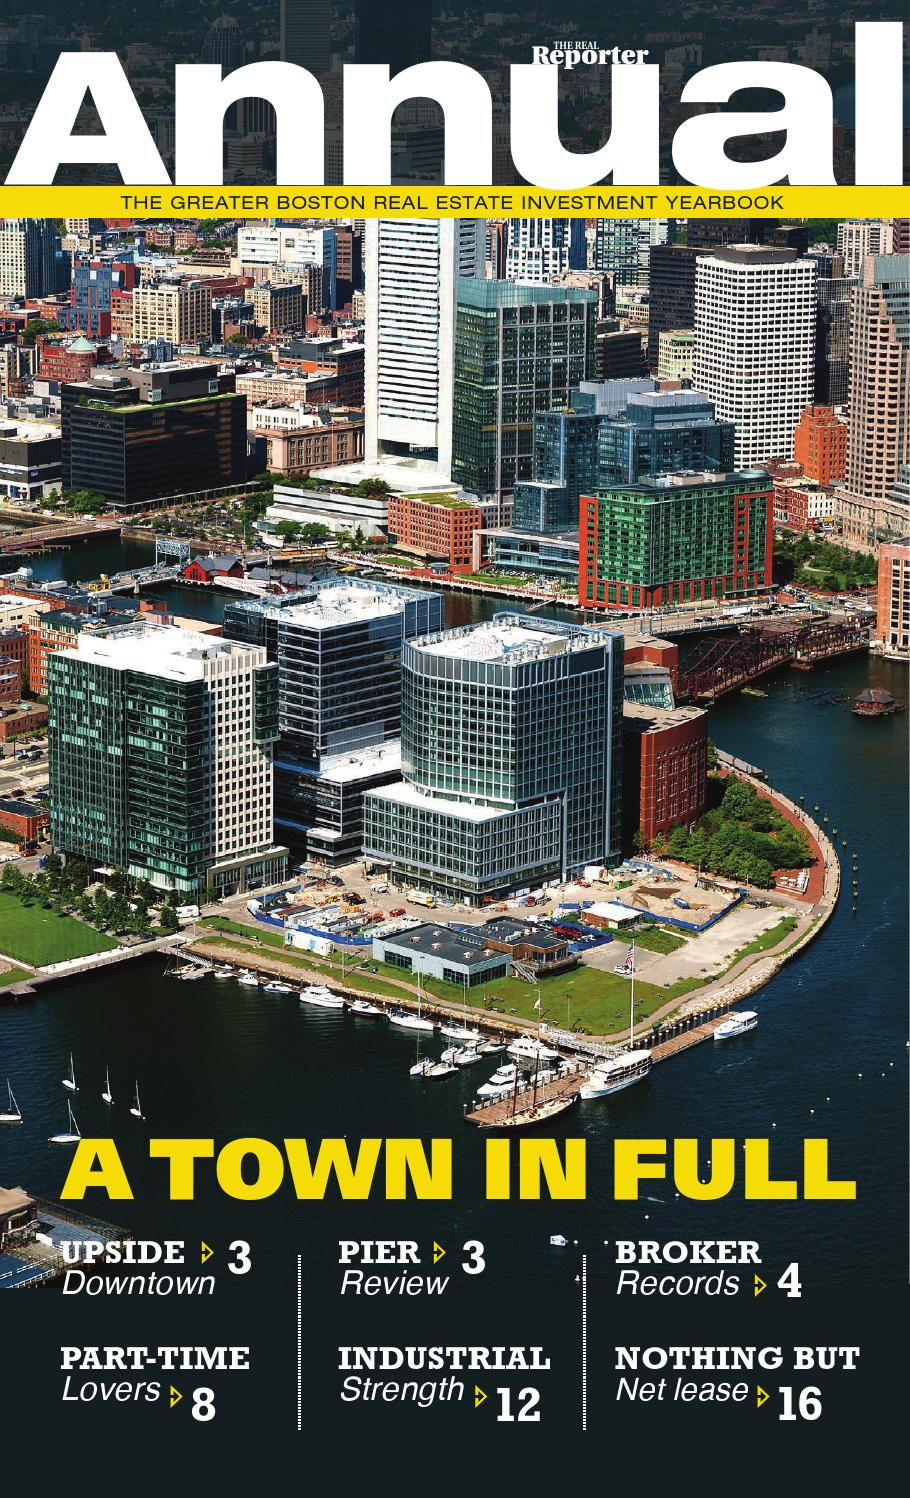 Annual Real Estate Investment Report - Greater Boston by The